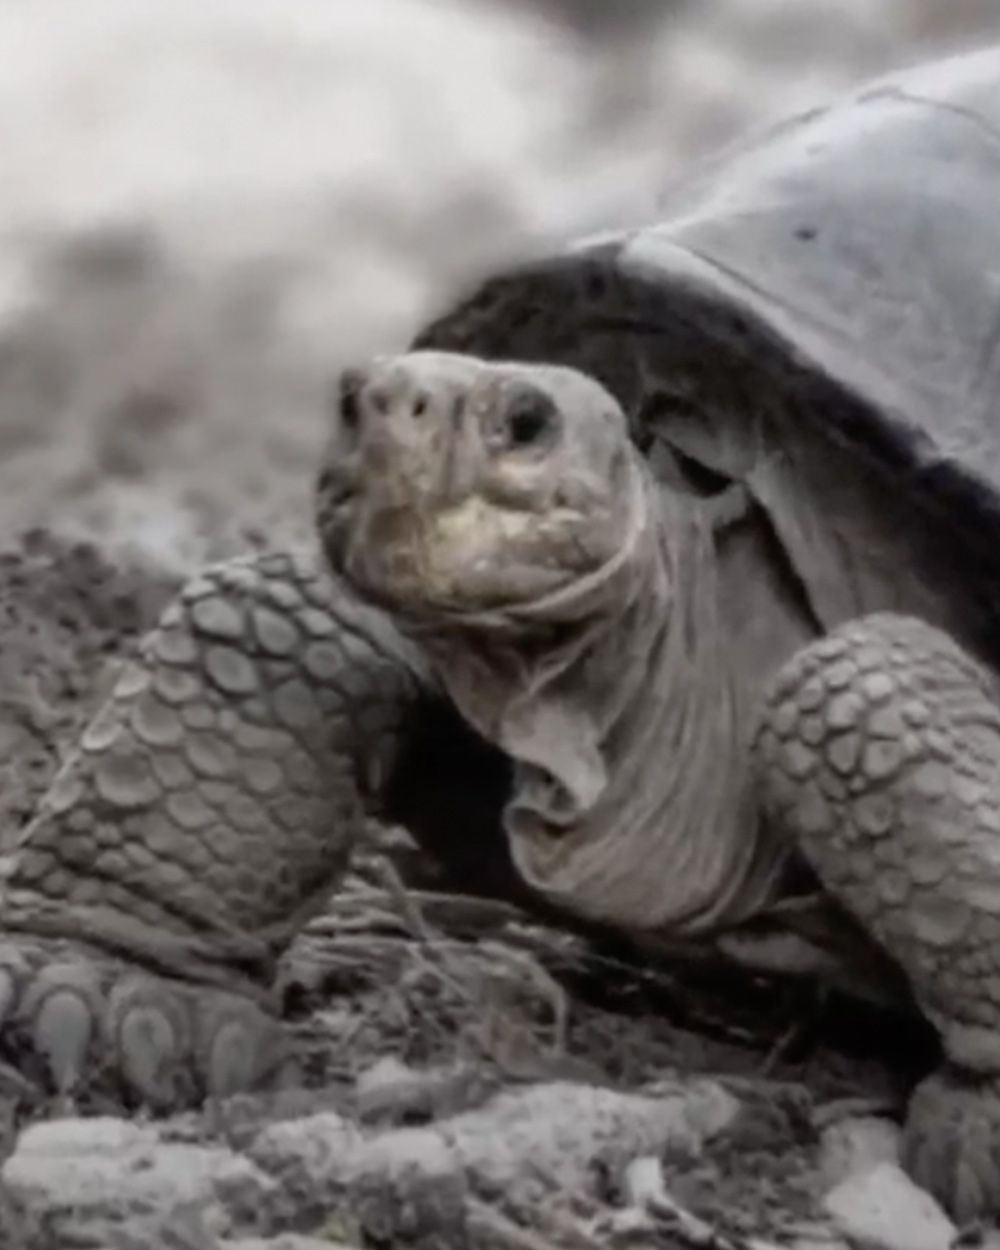 Giant Tortoises were thought to have gone extinct on Fernandina Island.